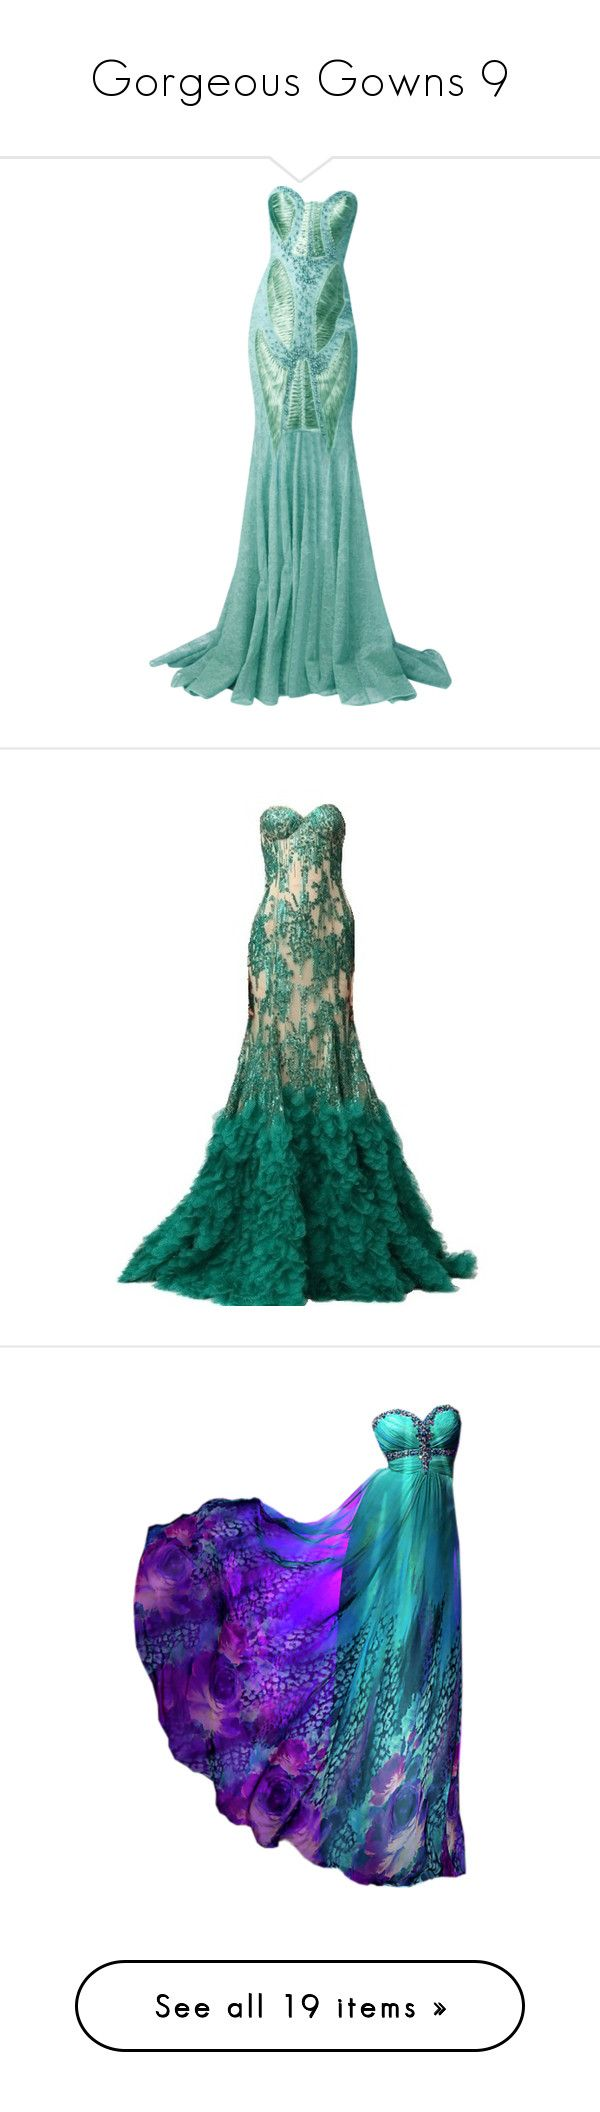 """""""Gorgeous Gowns 9"""" by jennziegirl ❤ liked on Polyvore featuring dresses, gowns, long dresses, vestidos, green gown, green evening gown, green dress, green ball gown, evening gowns and green"""